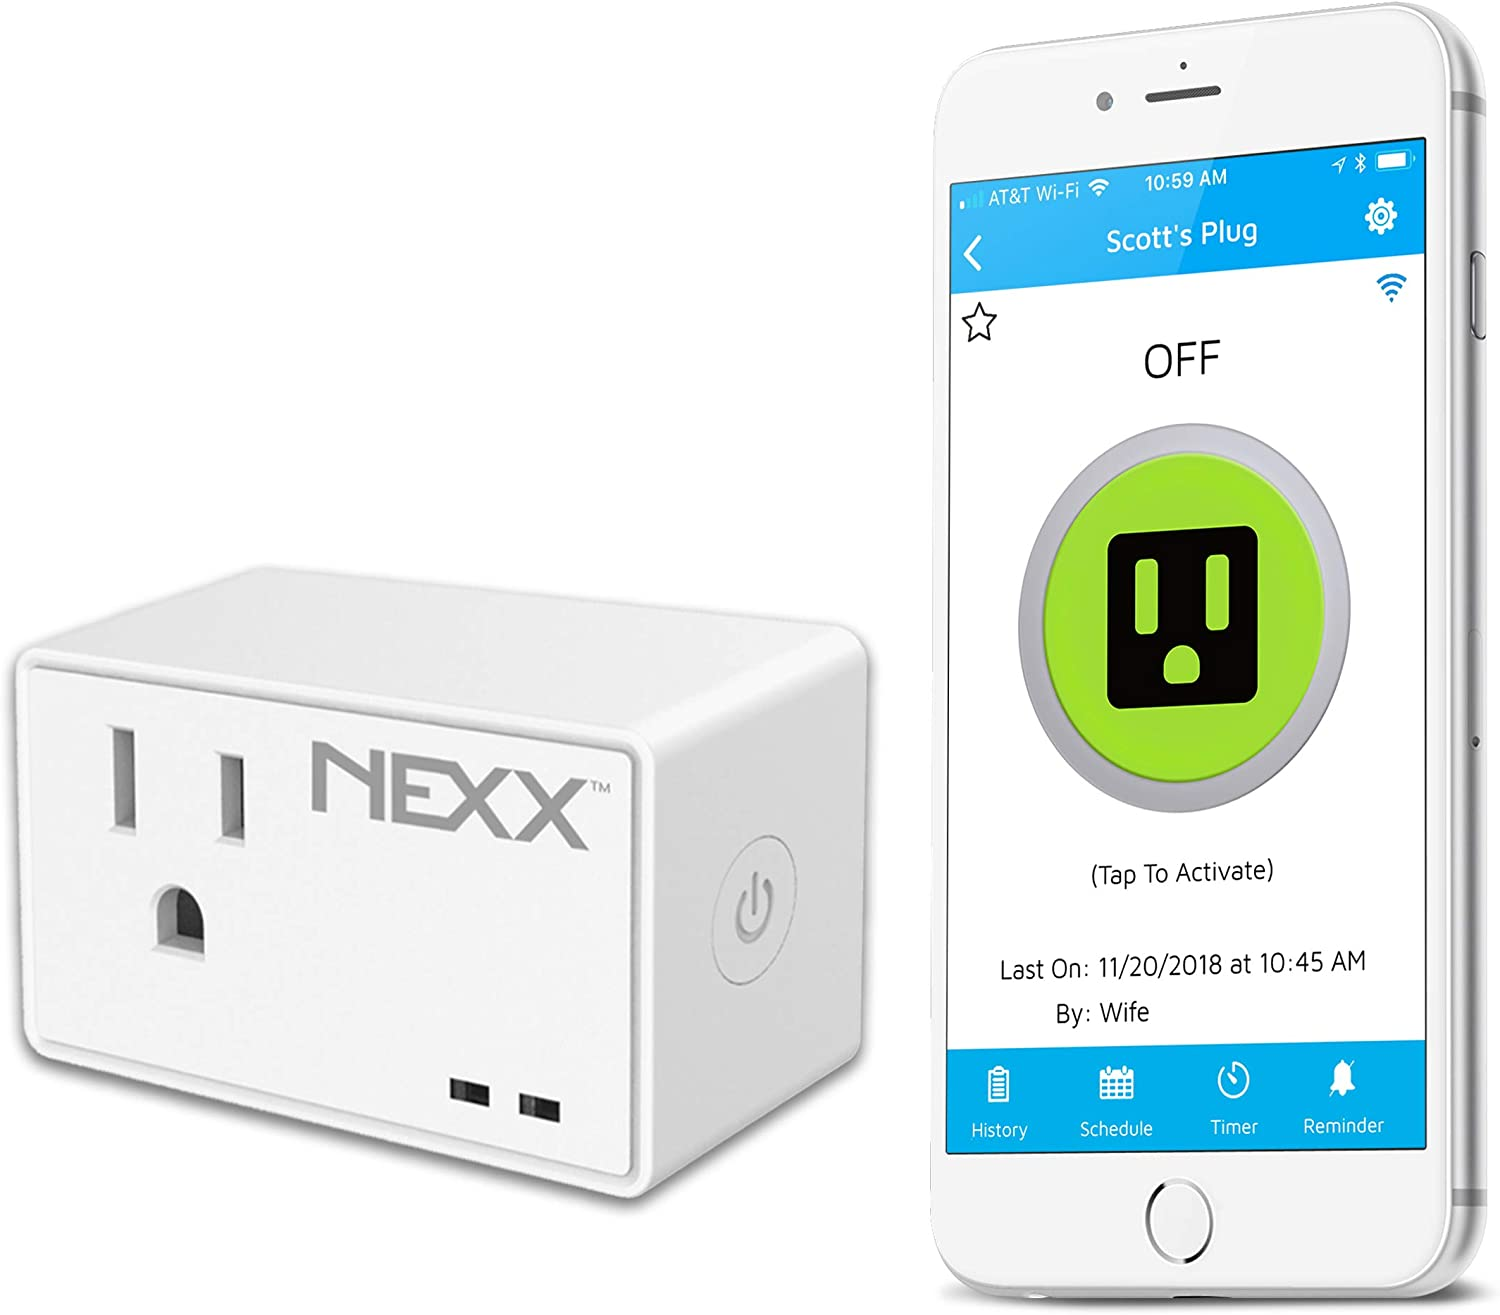 NEXX NXPG-100W WiFi Smart Plug with Geofencing Technology Control, Schedule and Monitor Appliances, TVs, Lamps, and More Using Smartphone, Siri, Amazon Alexa, Google Assistant. No Hub Required, White